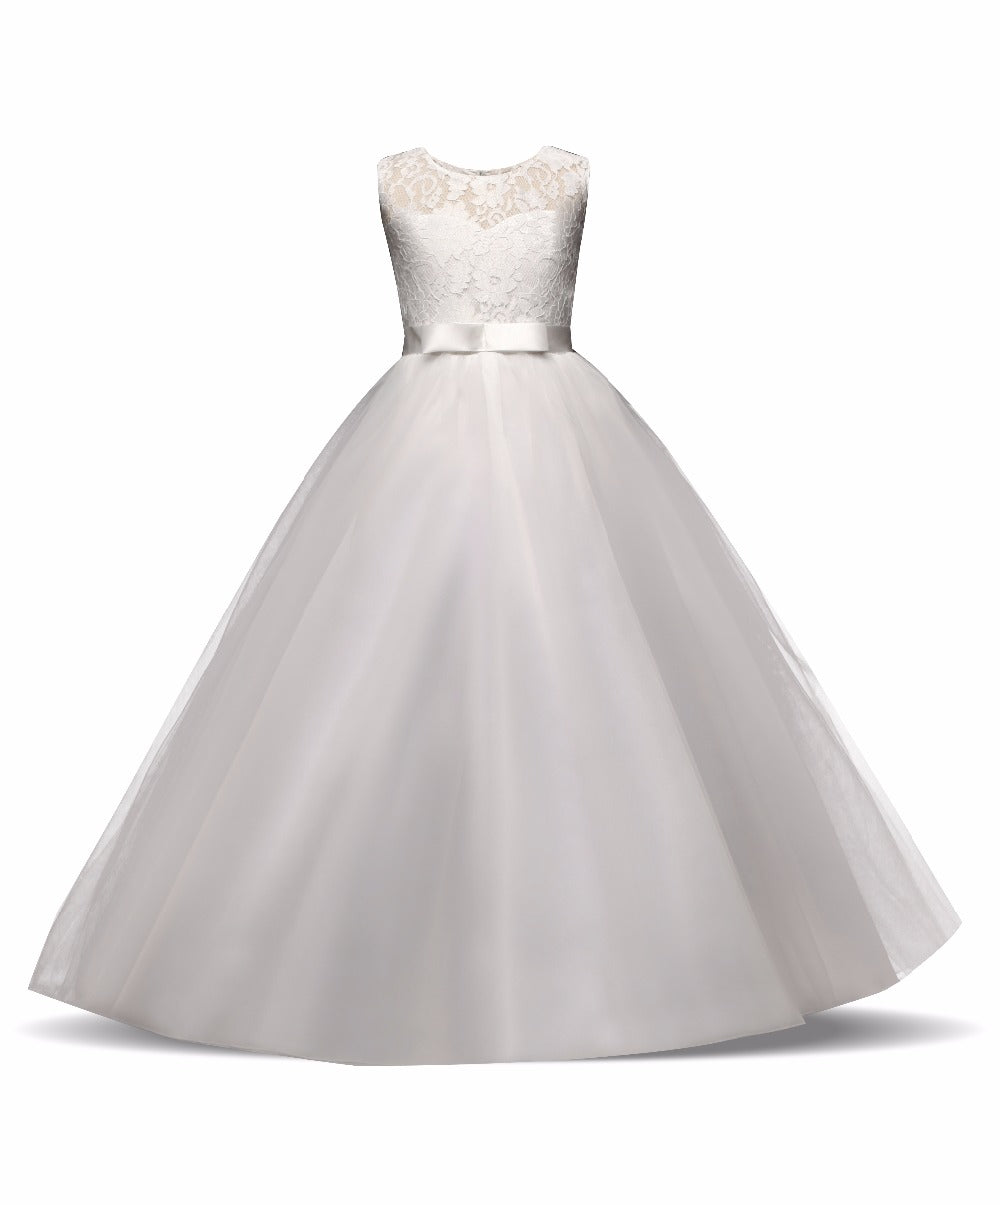 Flower Girl Dresses With Bow Tulle Lace Formal Ball Gown First